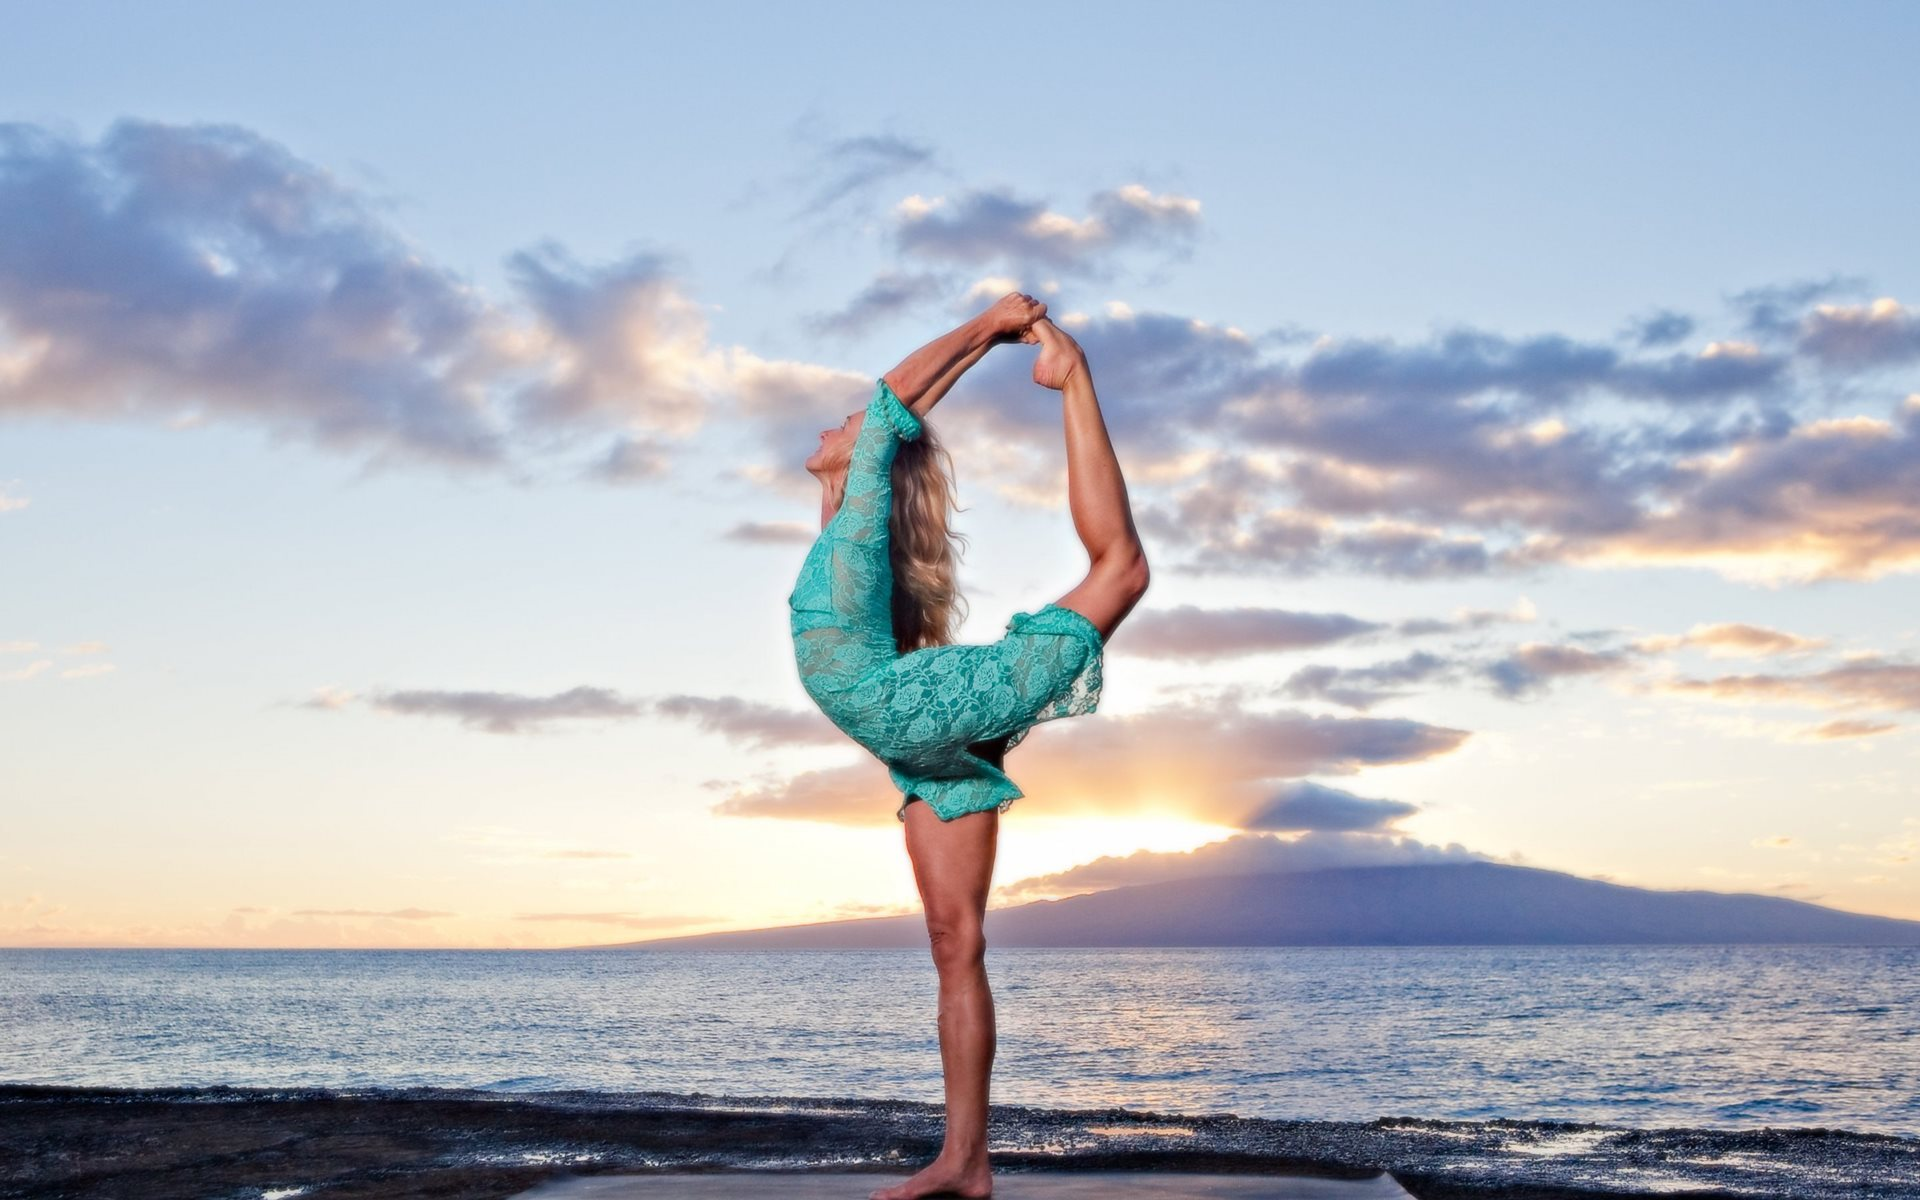 Yoga Wallpaper Hd Posted By Sarah Sellers